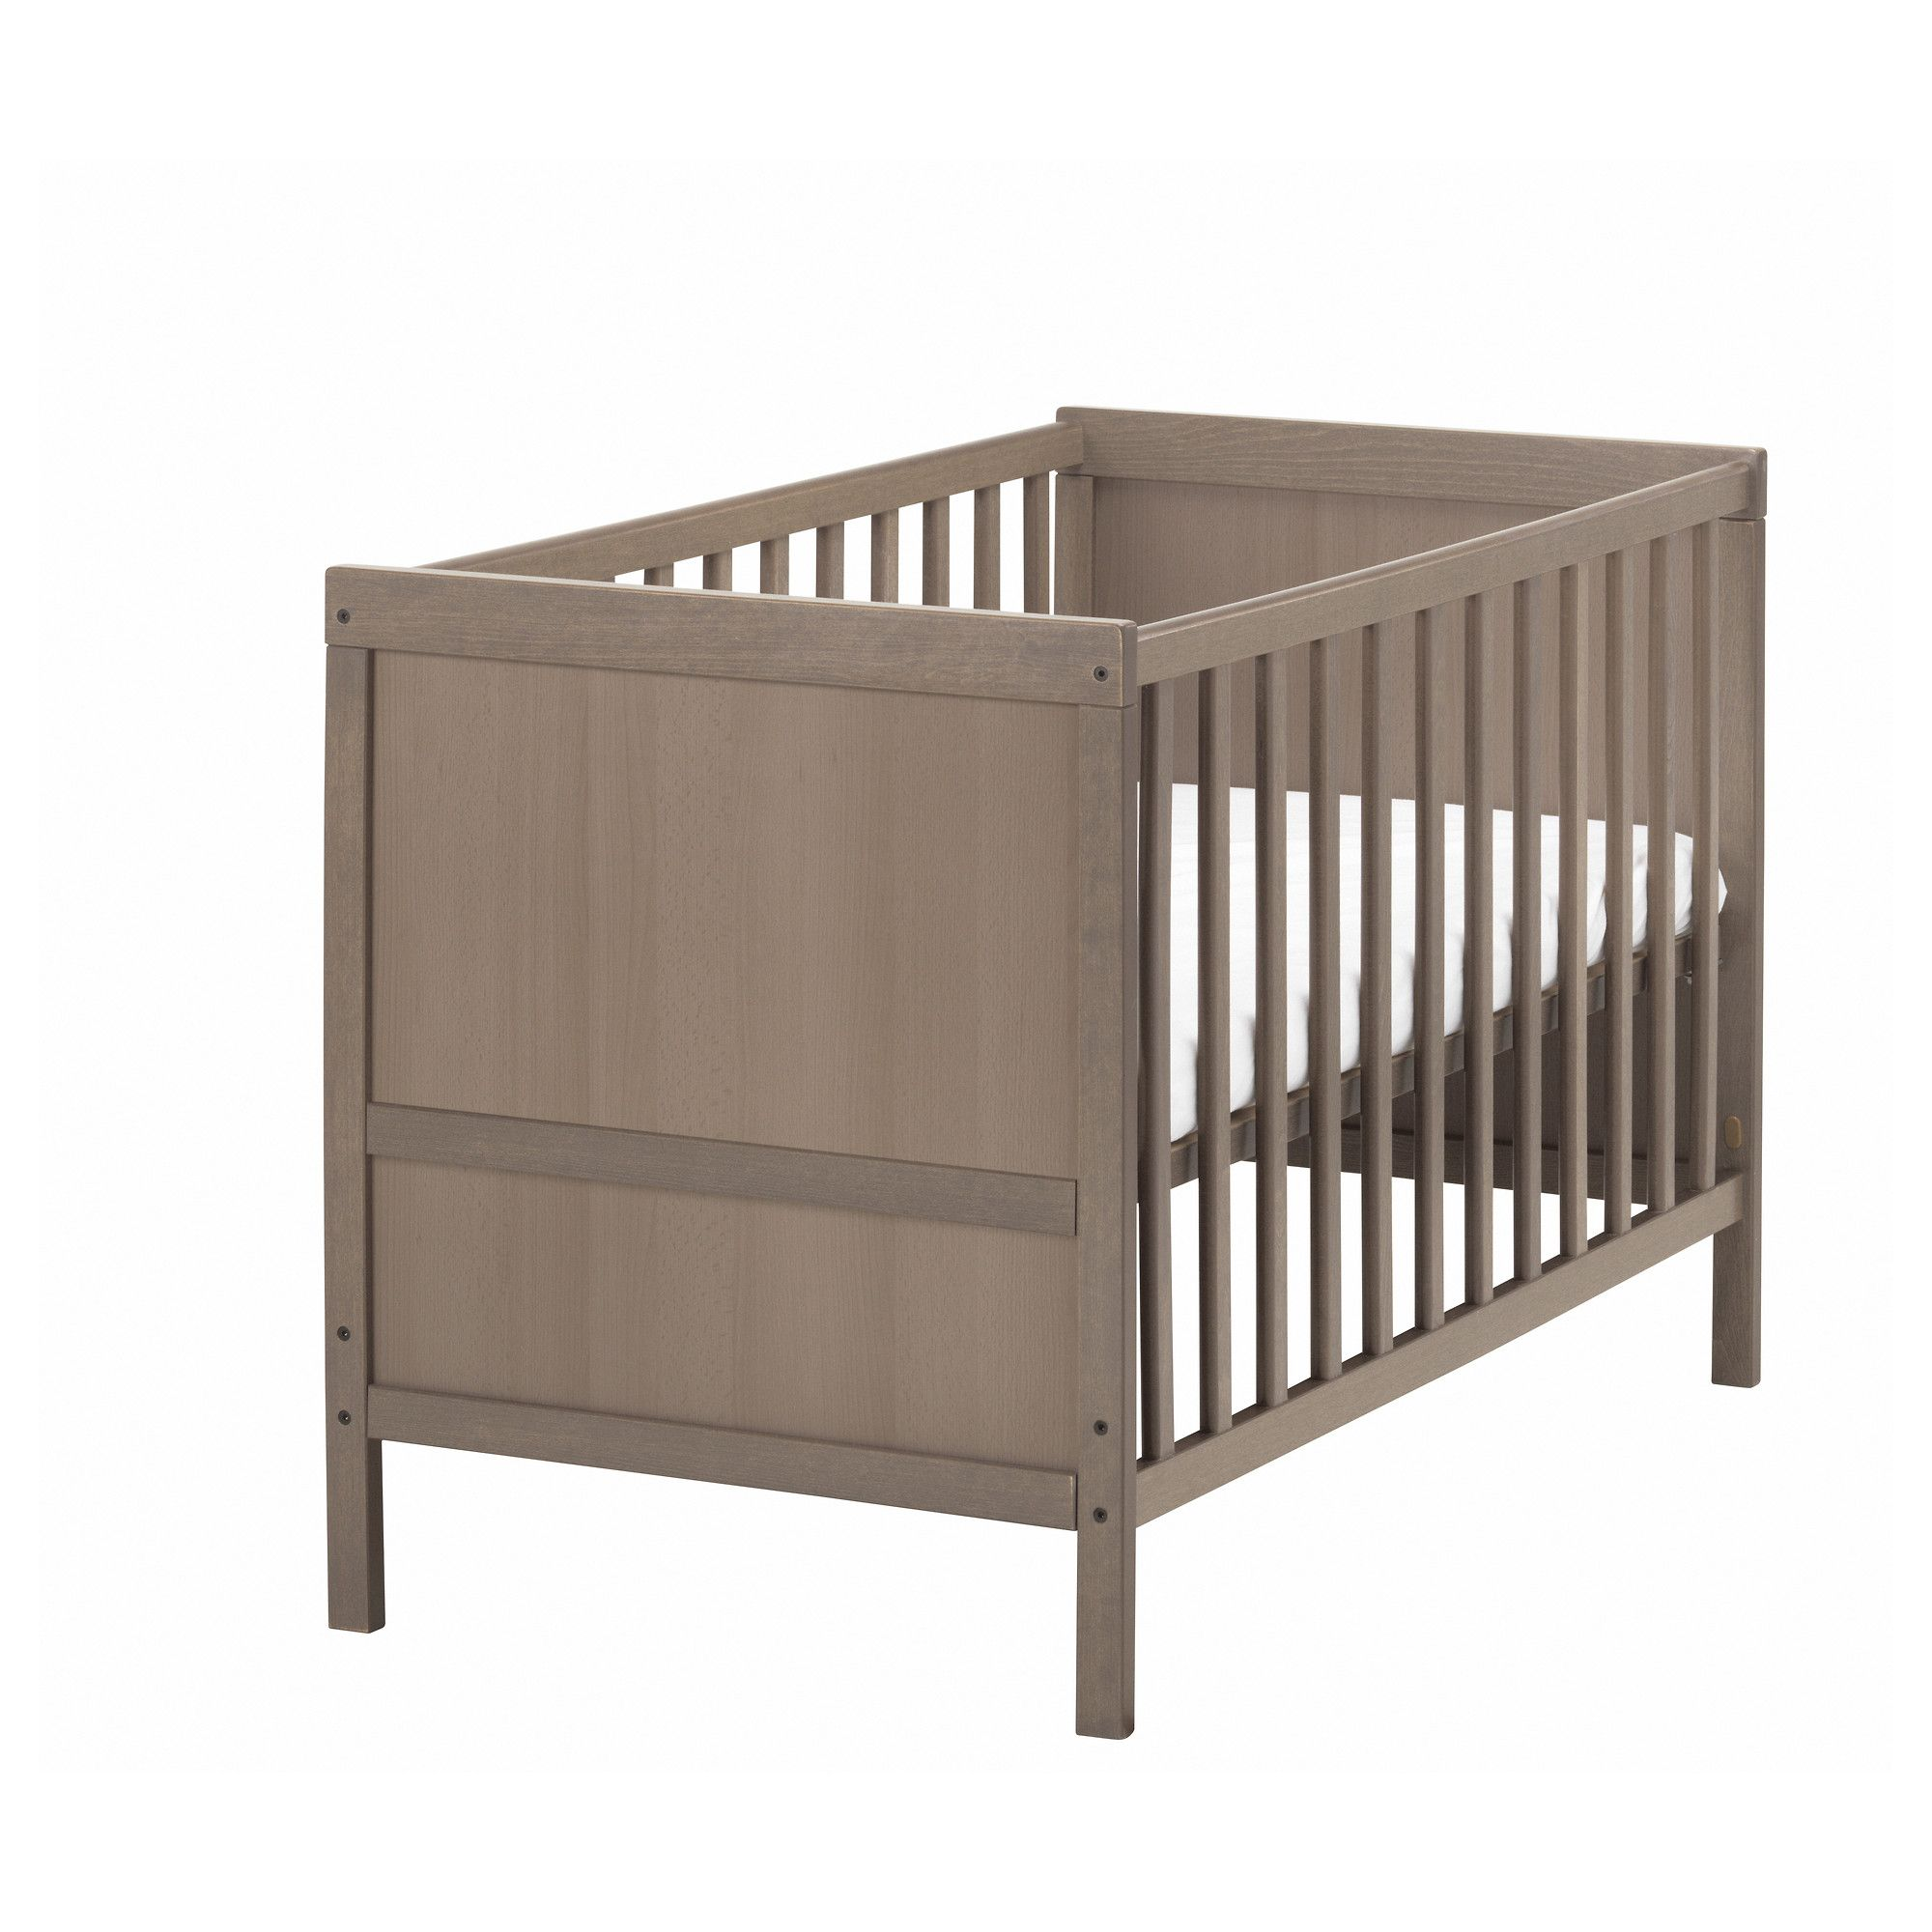 Furniture And Home Furnishings Ikea Crib Ikea Sundvik Cribs